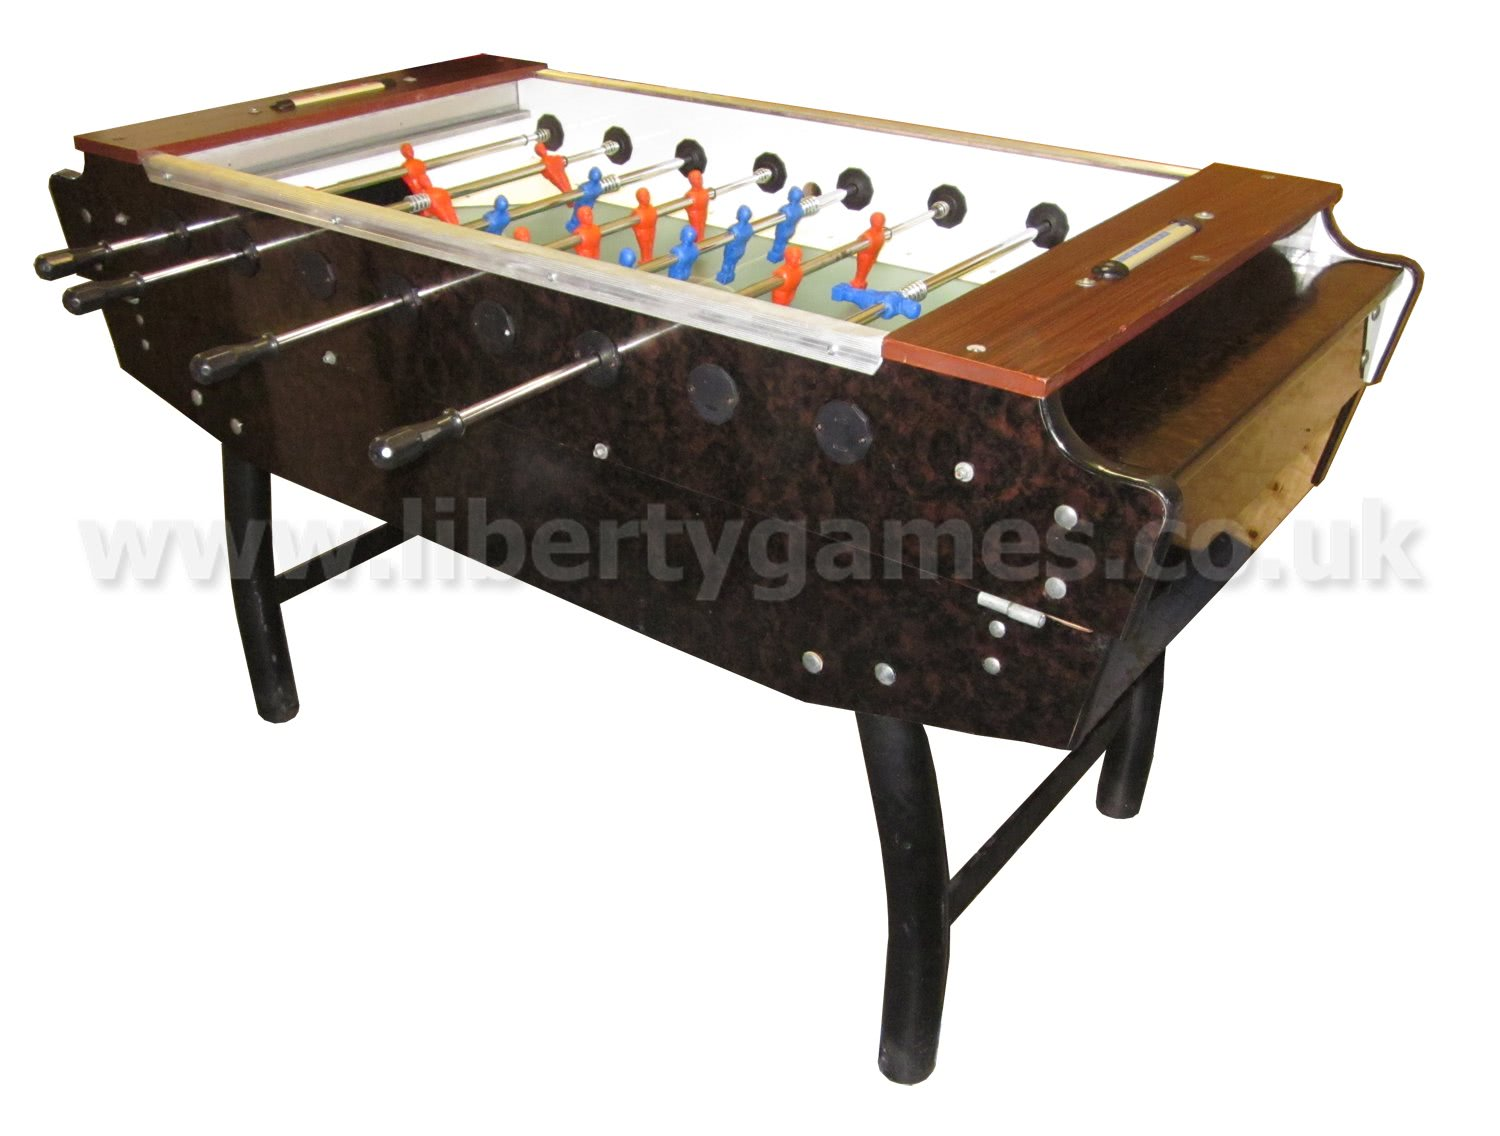 Coin Operated Commercial Football Tables Liberty Games